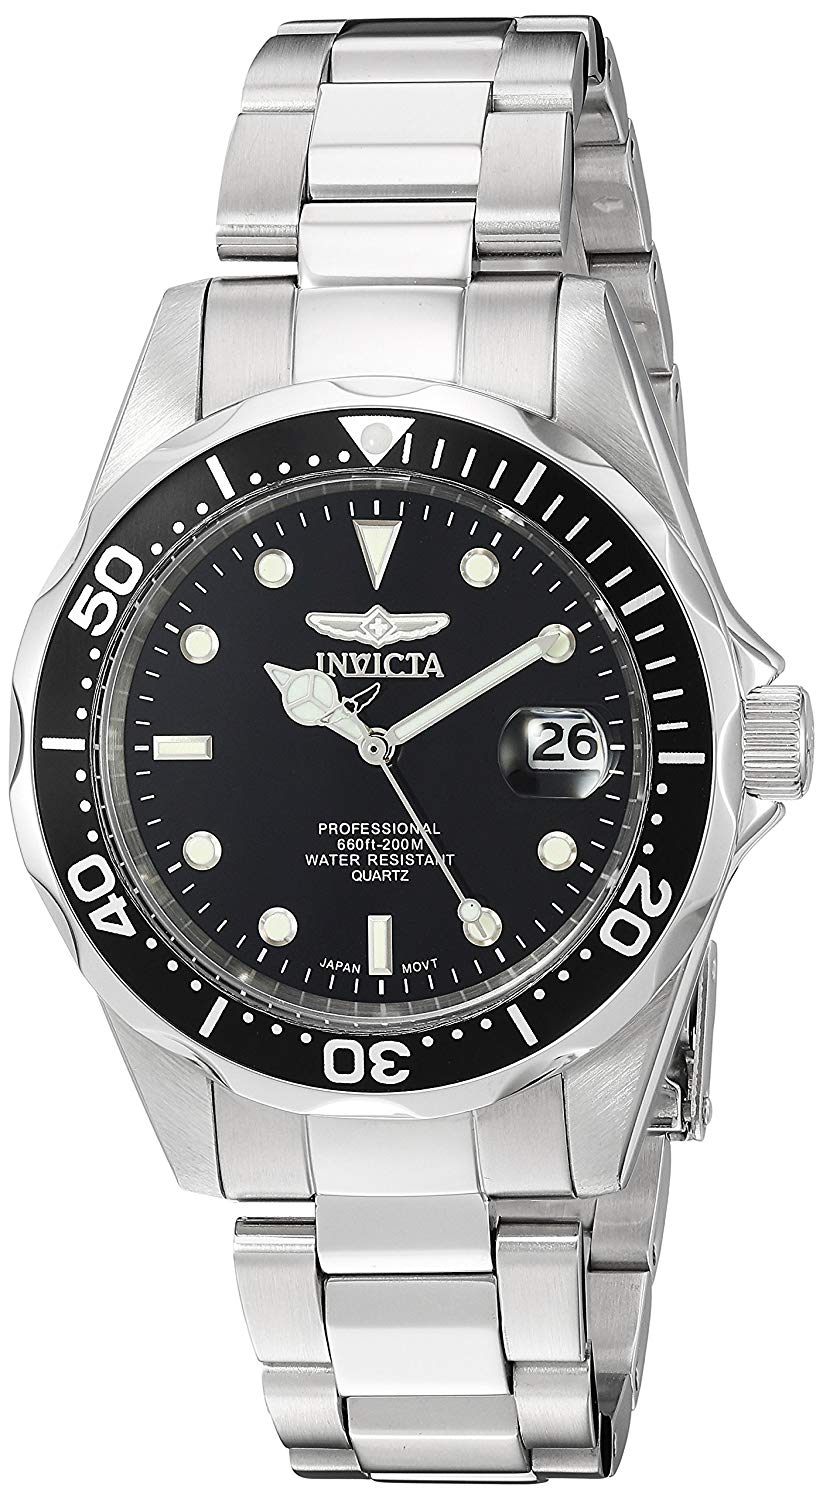 Invicta Men's Analogue Quarz Watch with Stainless Steel Strap 8932 for £59.00